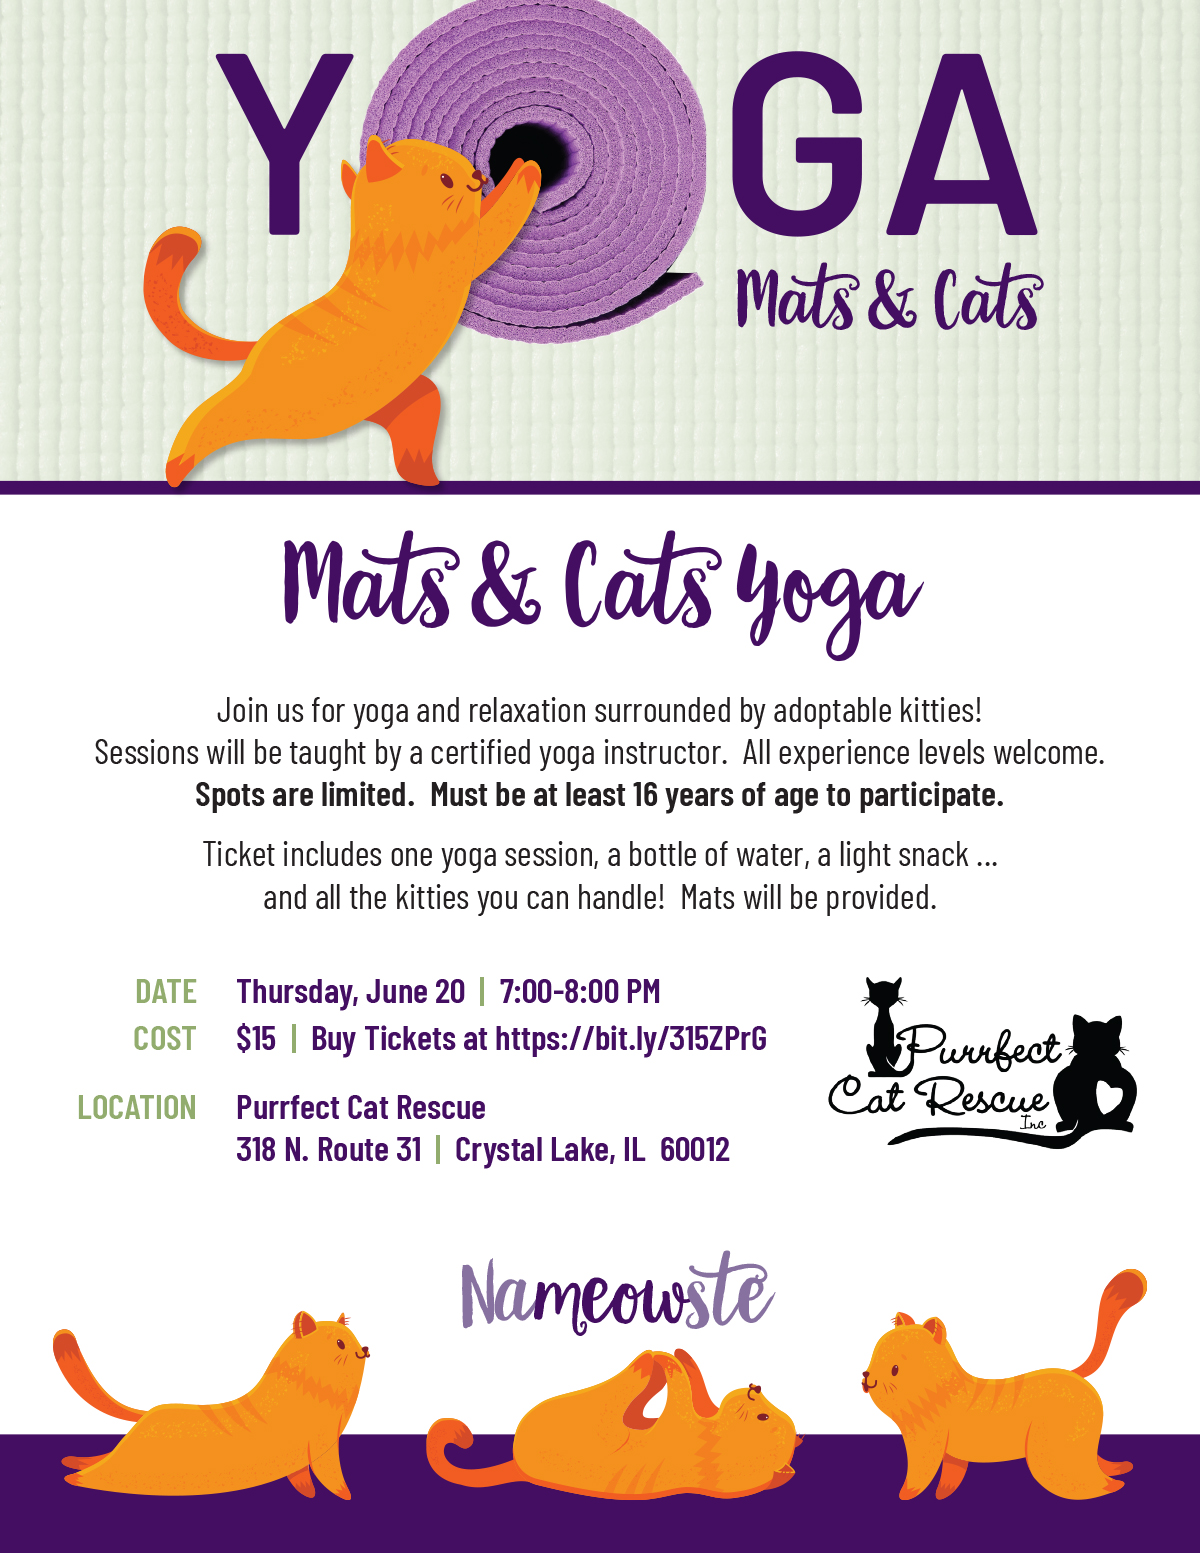 purrfect_cat_rescue_mats_and_cats_yoga_flyer_062019.jpg